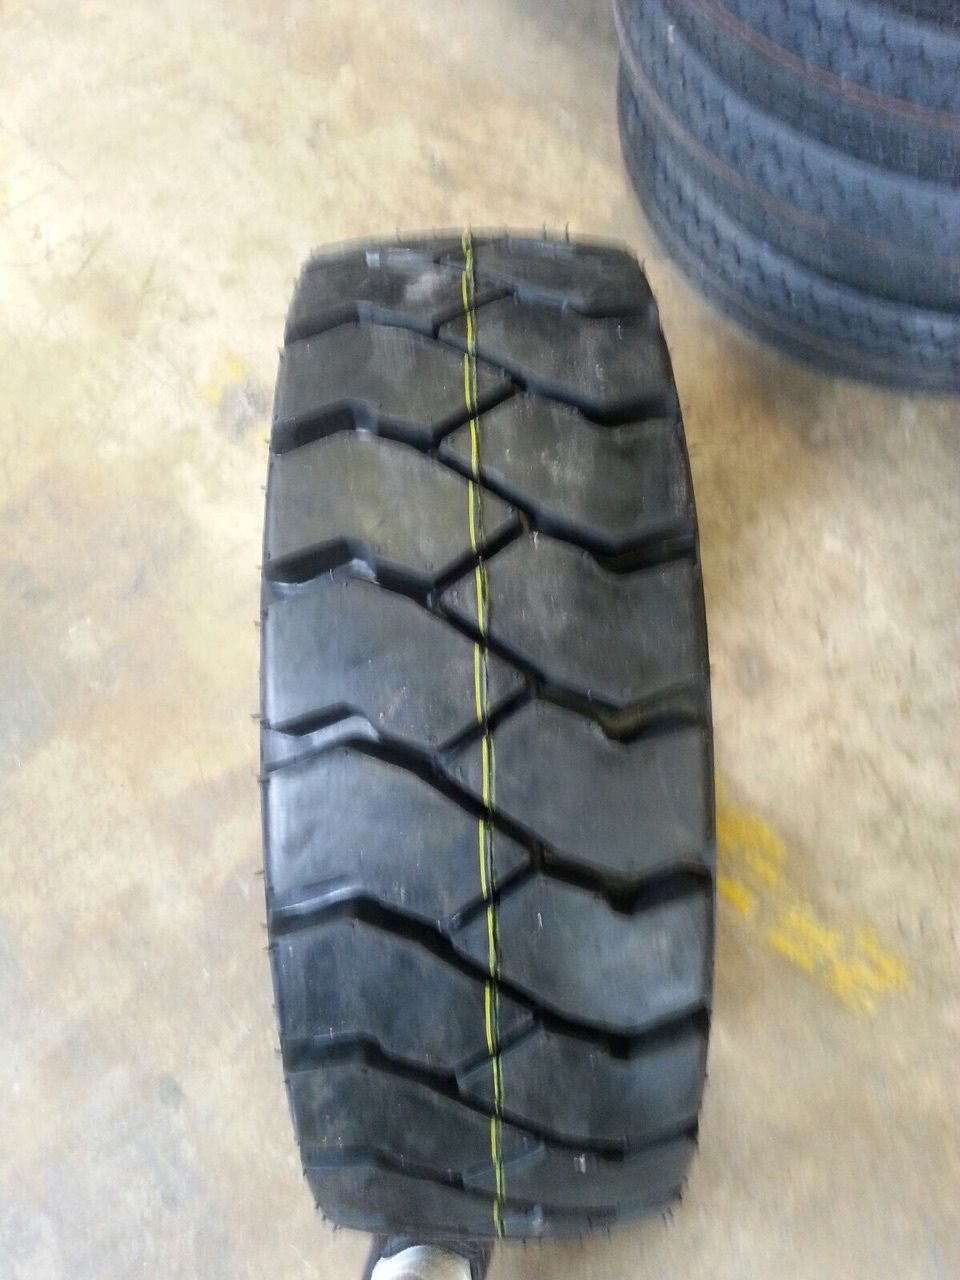 TWO BRAND NEW 8.15-15 FORKLIFT 12 PR TIRES WITH TUBES 8.15x15 815x15 815-15